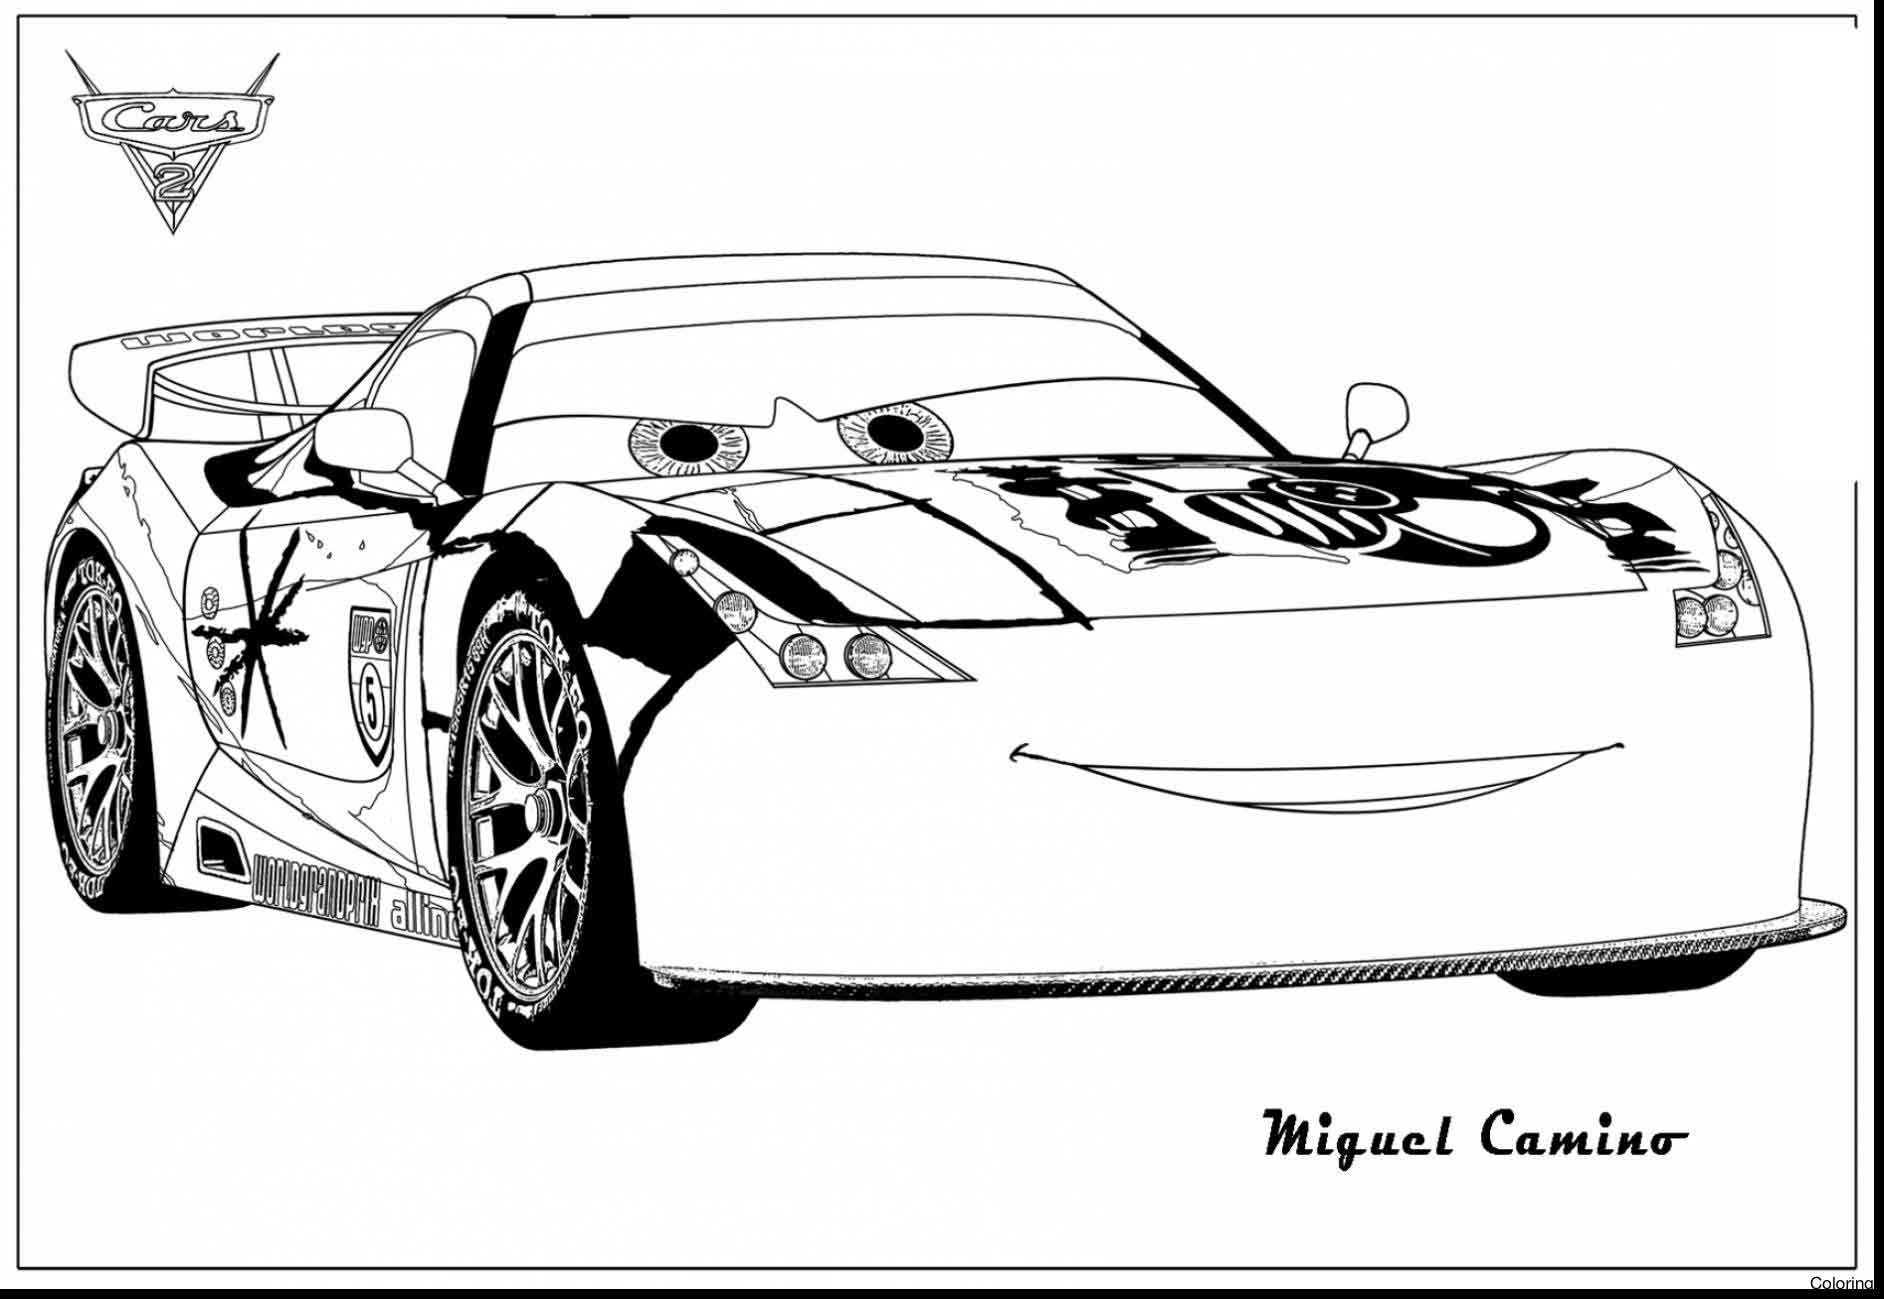 disney cars 2 colouring pictures to print disney pixar39s cars coloring pages disneyclipscom disney colouring print pictures 2 cars to